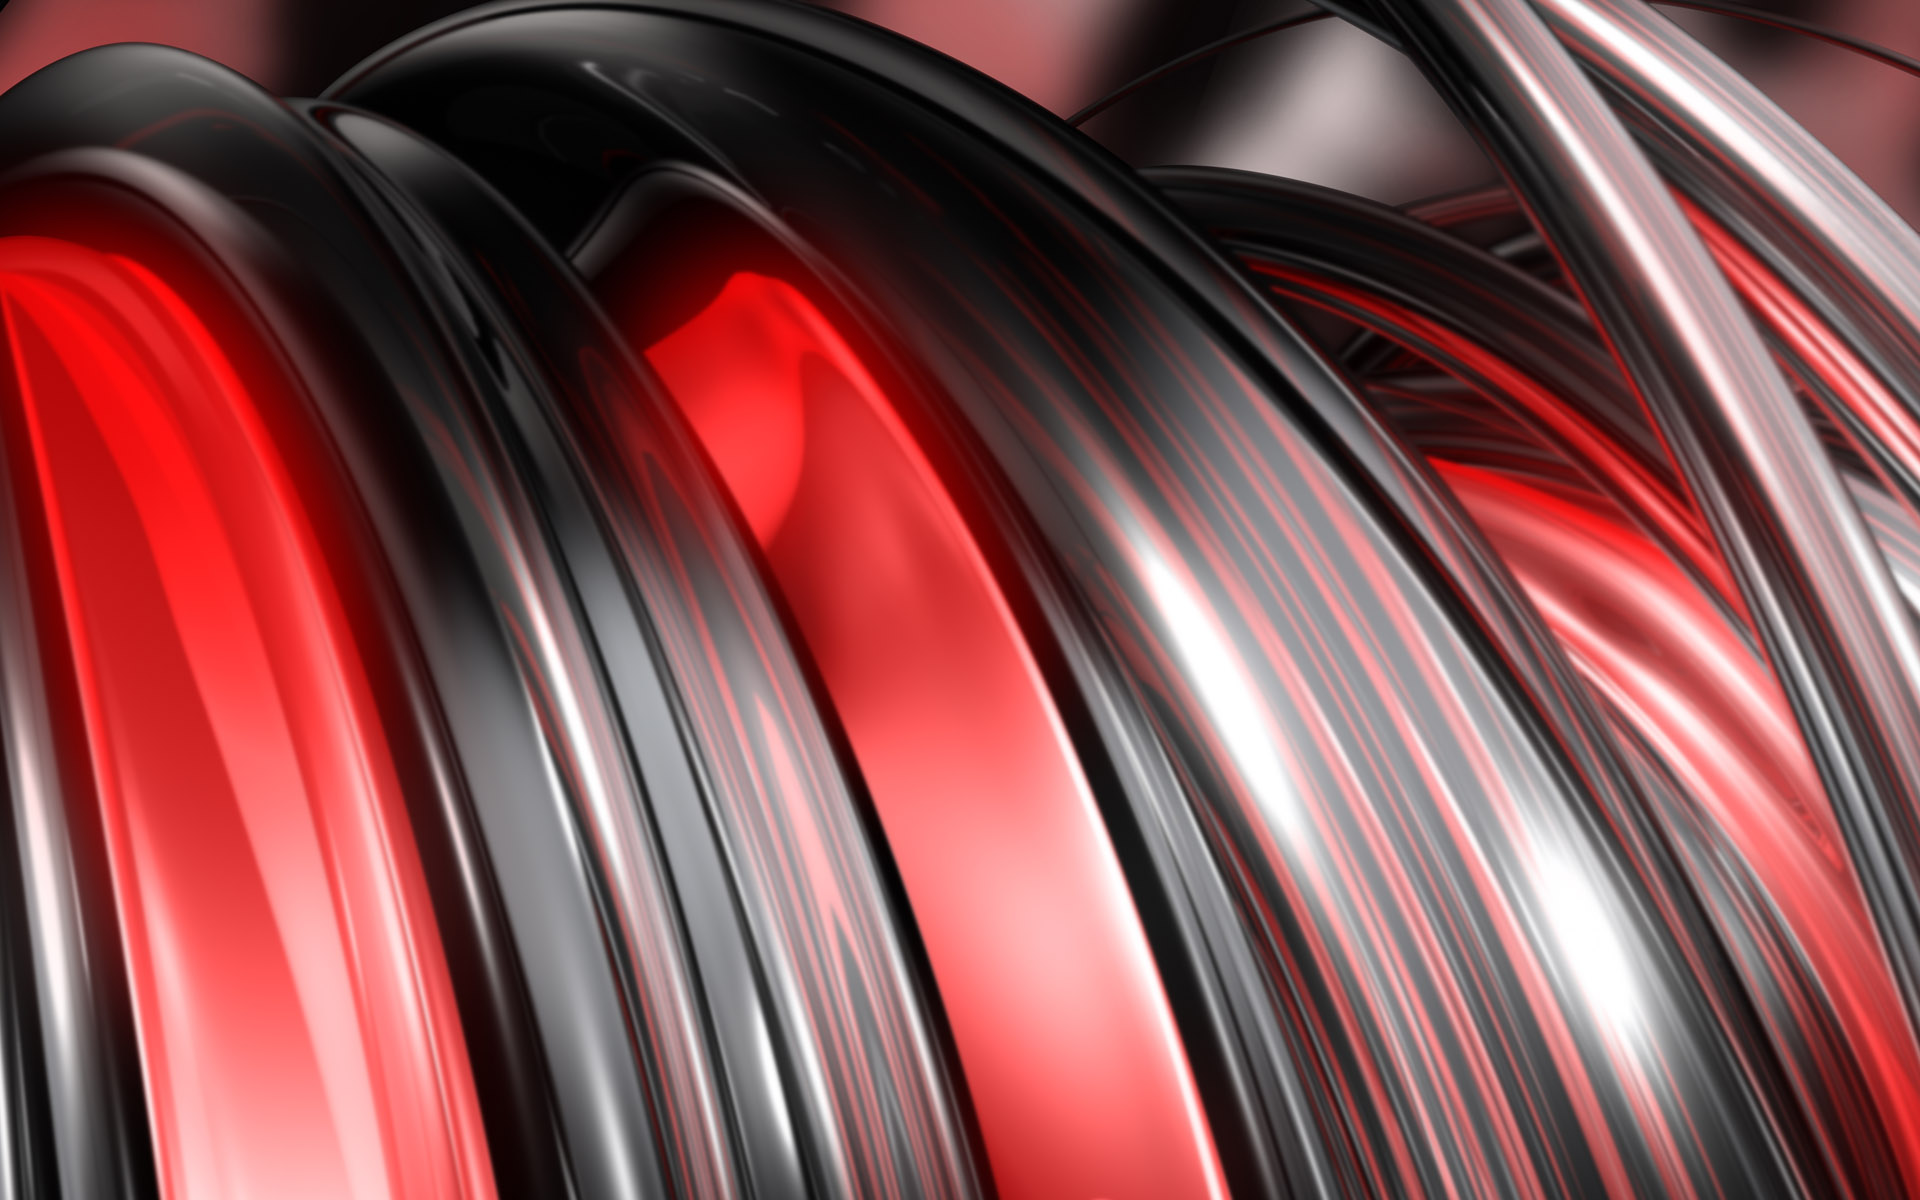 Light Effect Hd Wallpaper Round Wires Wallpapers Round Wires Stock Photos